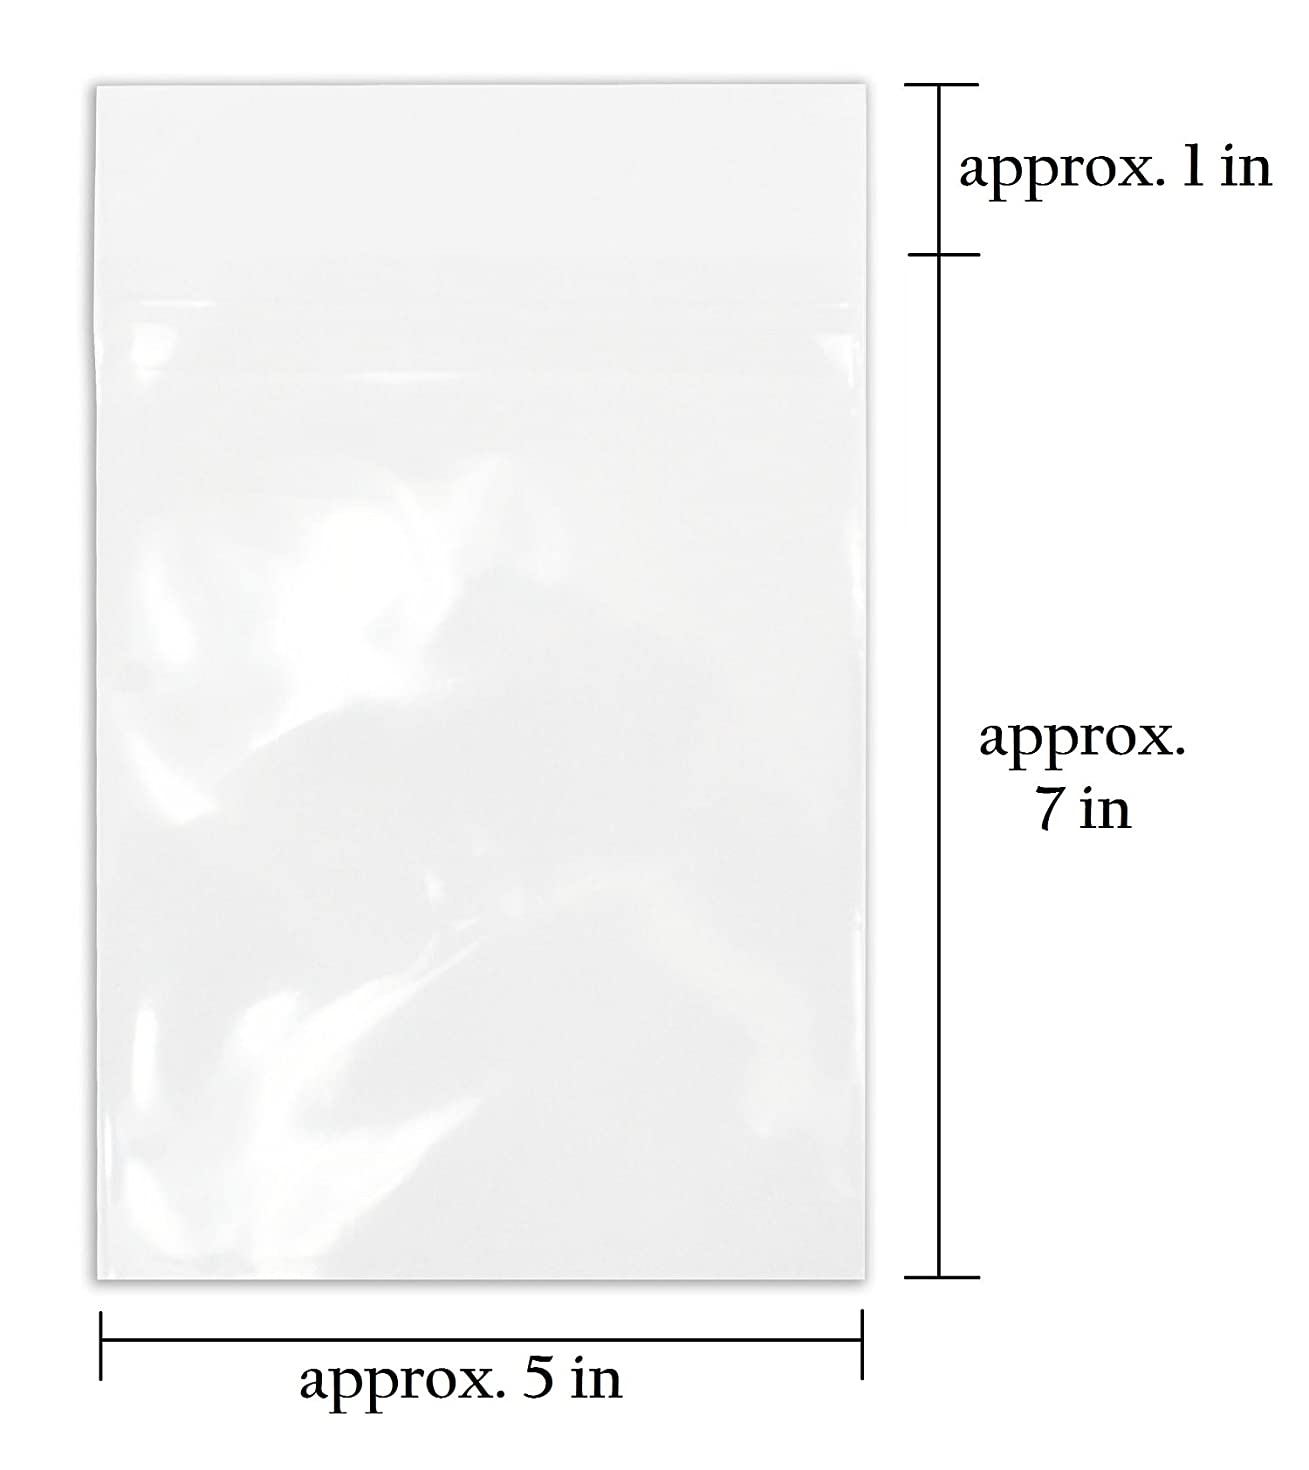 Golden State Art, Pack of 100, Acid-Free 5 1/4 X 7 1/8 inches Crystal Clear Sleeves Storage Bags for 5x7 Photo Framing Mats Mattes